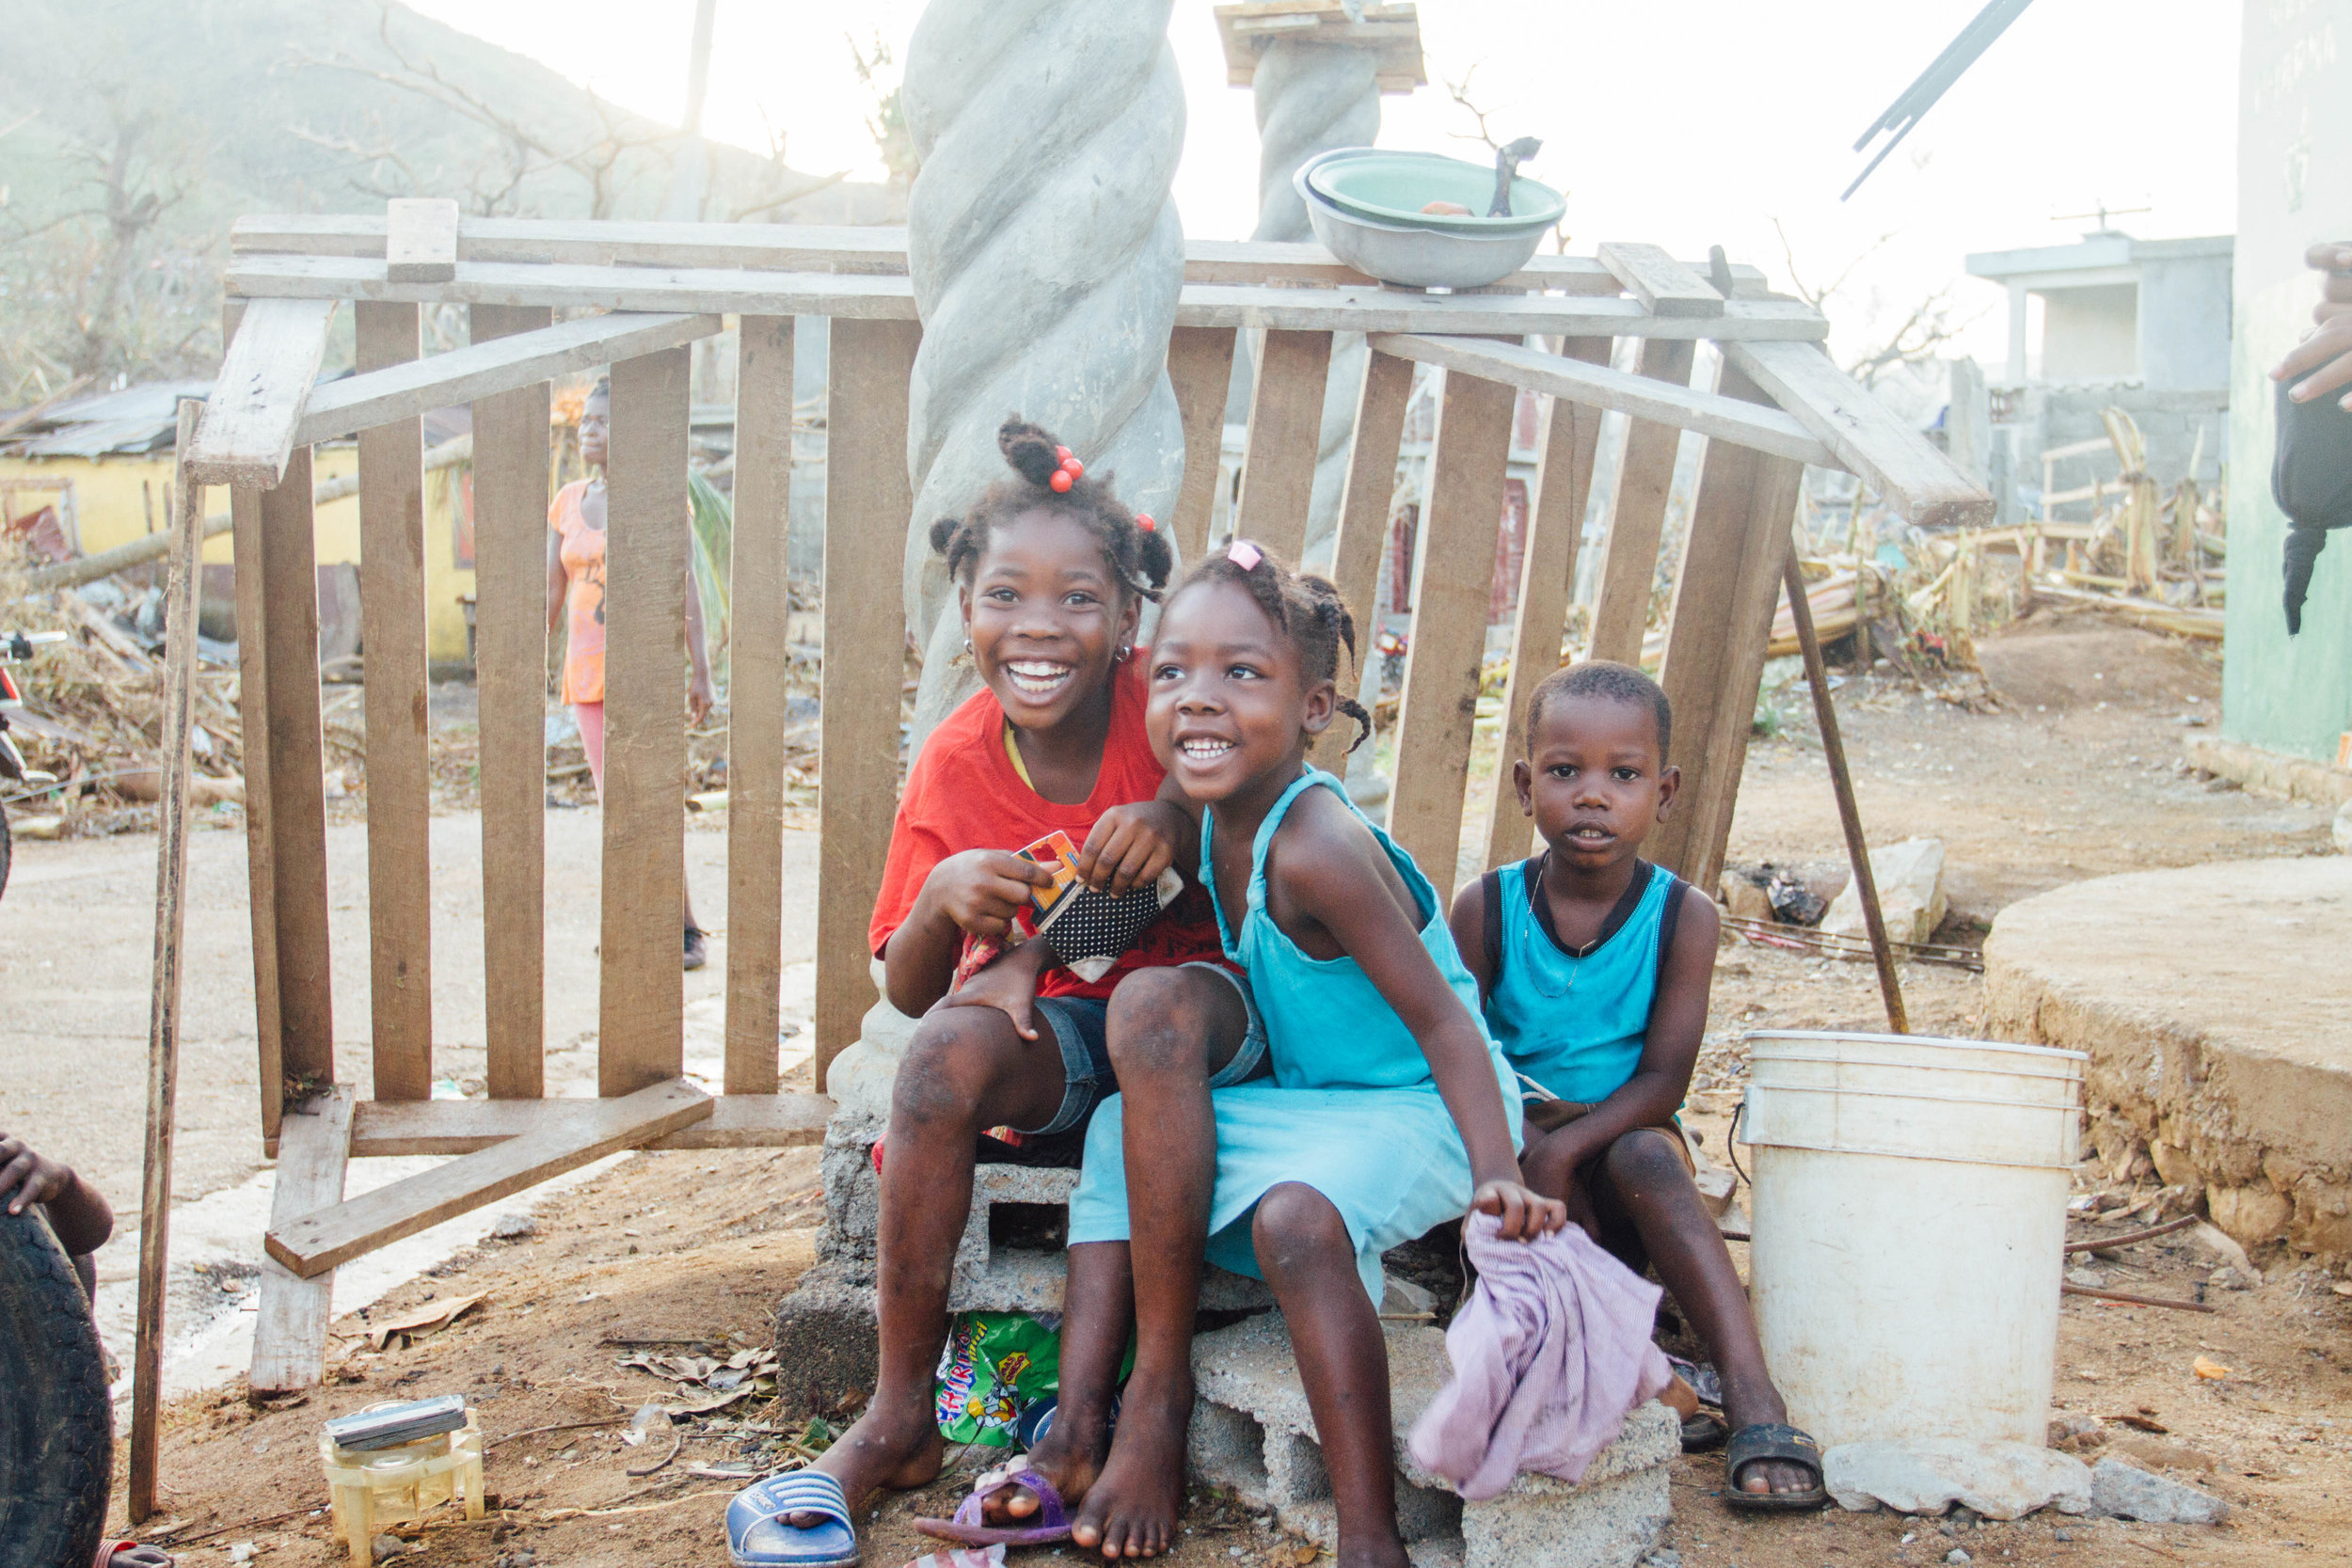 October 10th  - R E S I L I E N T. When people ask me about the Haitian people, that's the first word that comes to my mind. It's truly beautiful to see their resilience & strength. Would you please continue to pray for these people & support relief going to those who have endured so much suffering? The relief efforts are only just beginning. There is so much devastation to overcome. As we walked through this village at sunrise, these joyful little beauties were yet another reminder that the darkness WILL NOT drive out the light.""